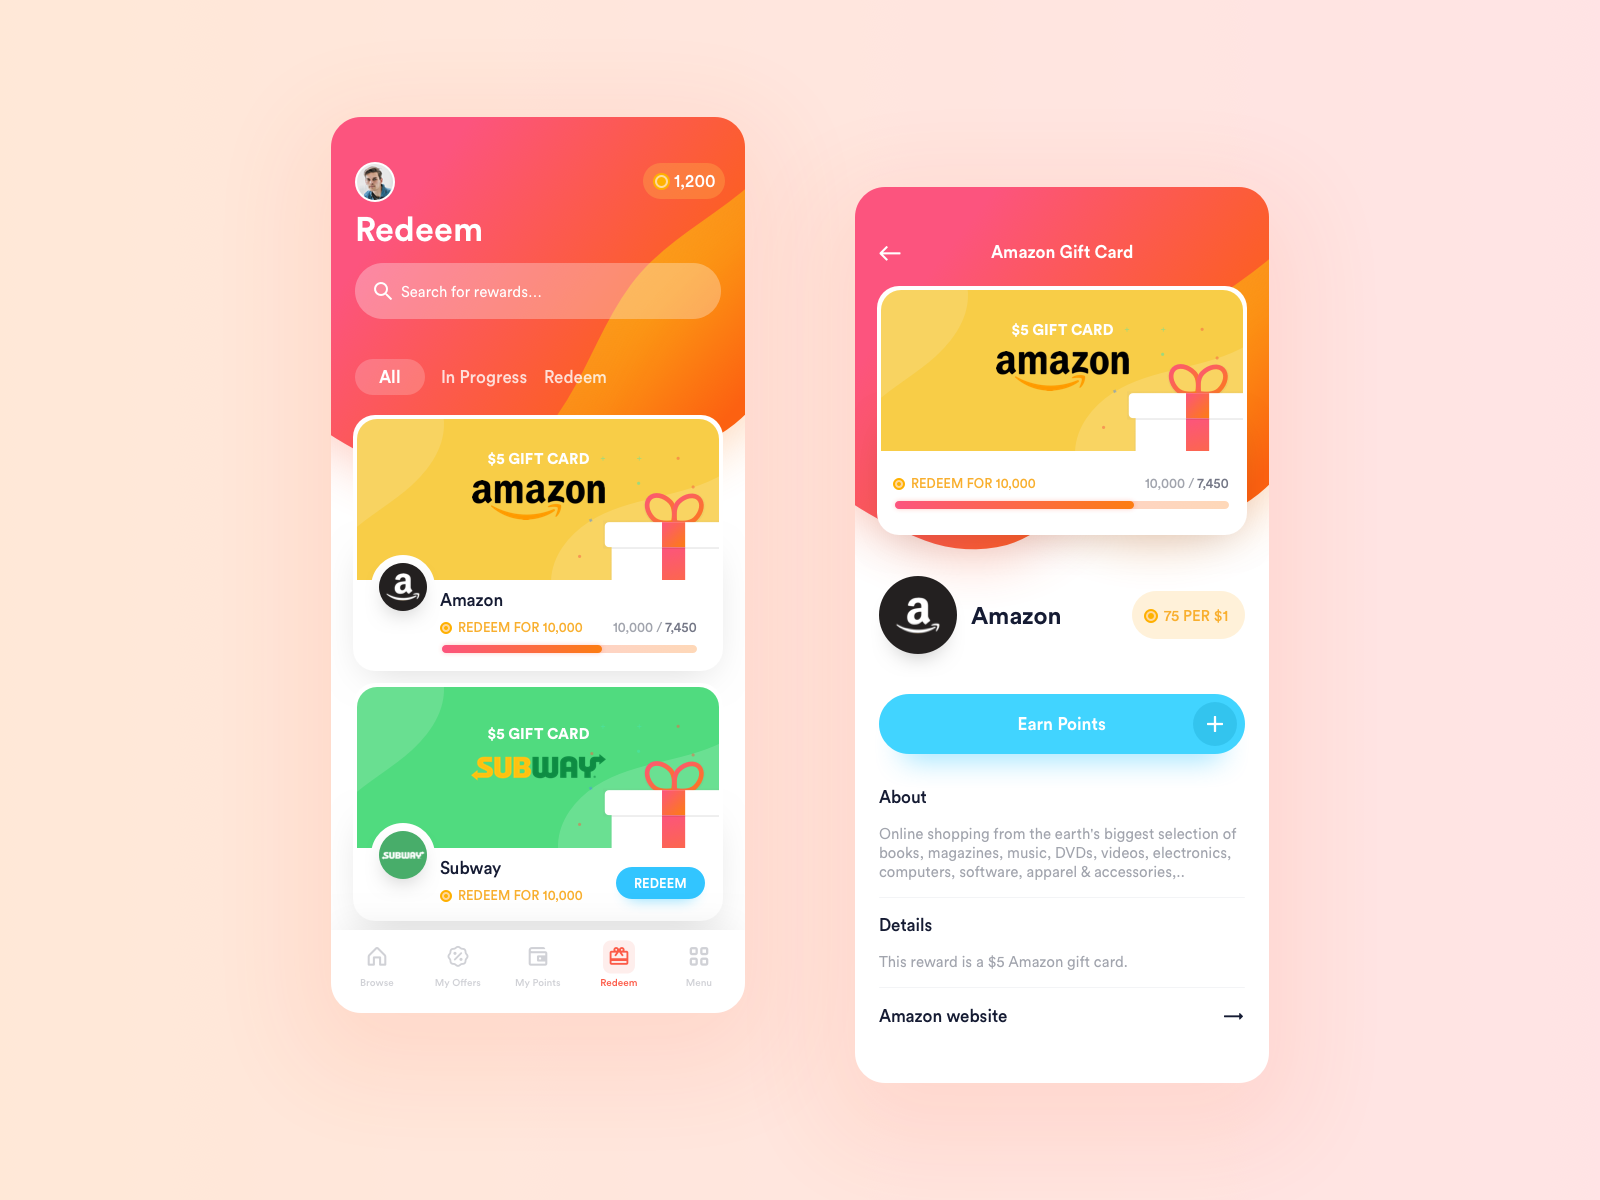 How To Redeem Amazon Gift Card On Mobile App